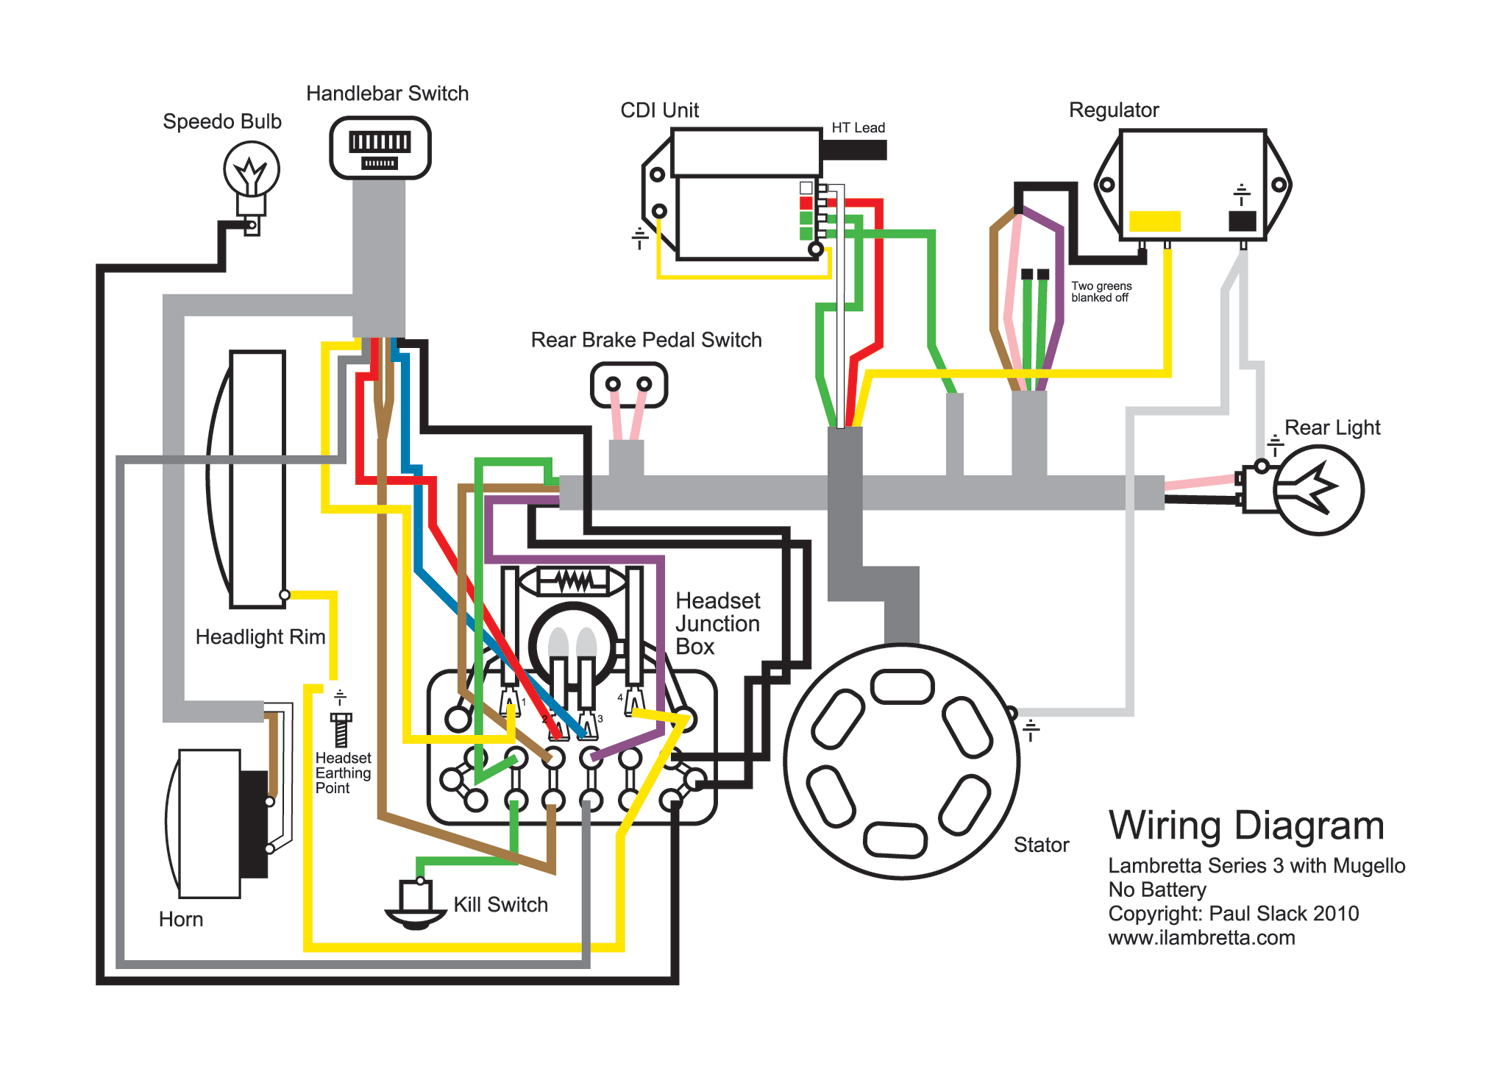 typical 120 volt wiring diagram typical circuit diagrams wiring rh 19 14 tokyo running sushi de 120 Volt Relay Wiring Diagram 240 Volt Wiring Diagram